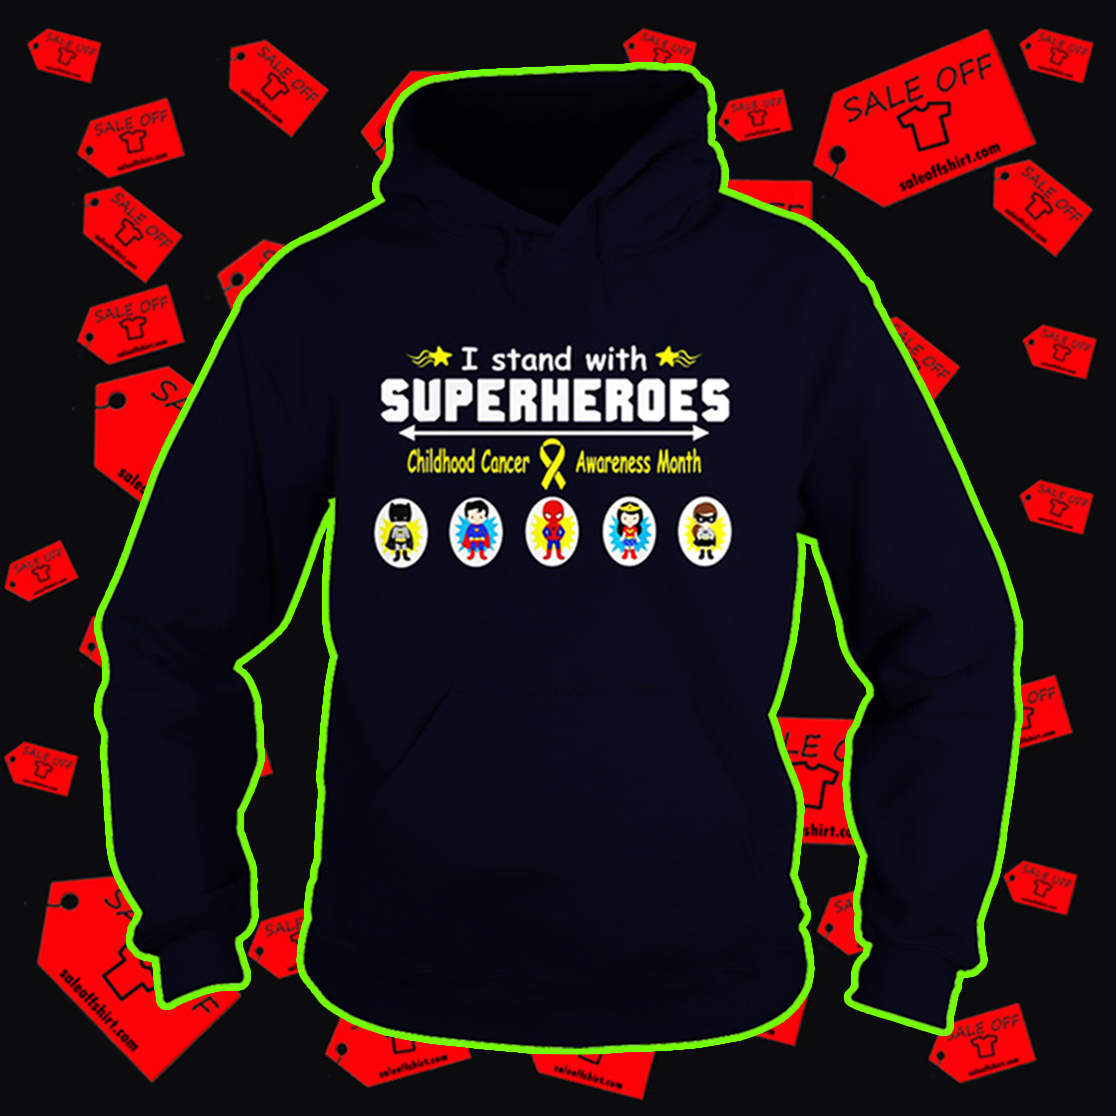 I stand with superheroes childhood cancer awareness month hoodie